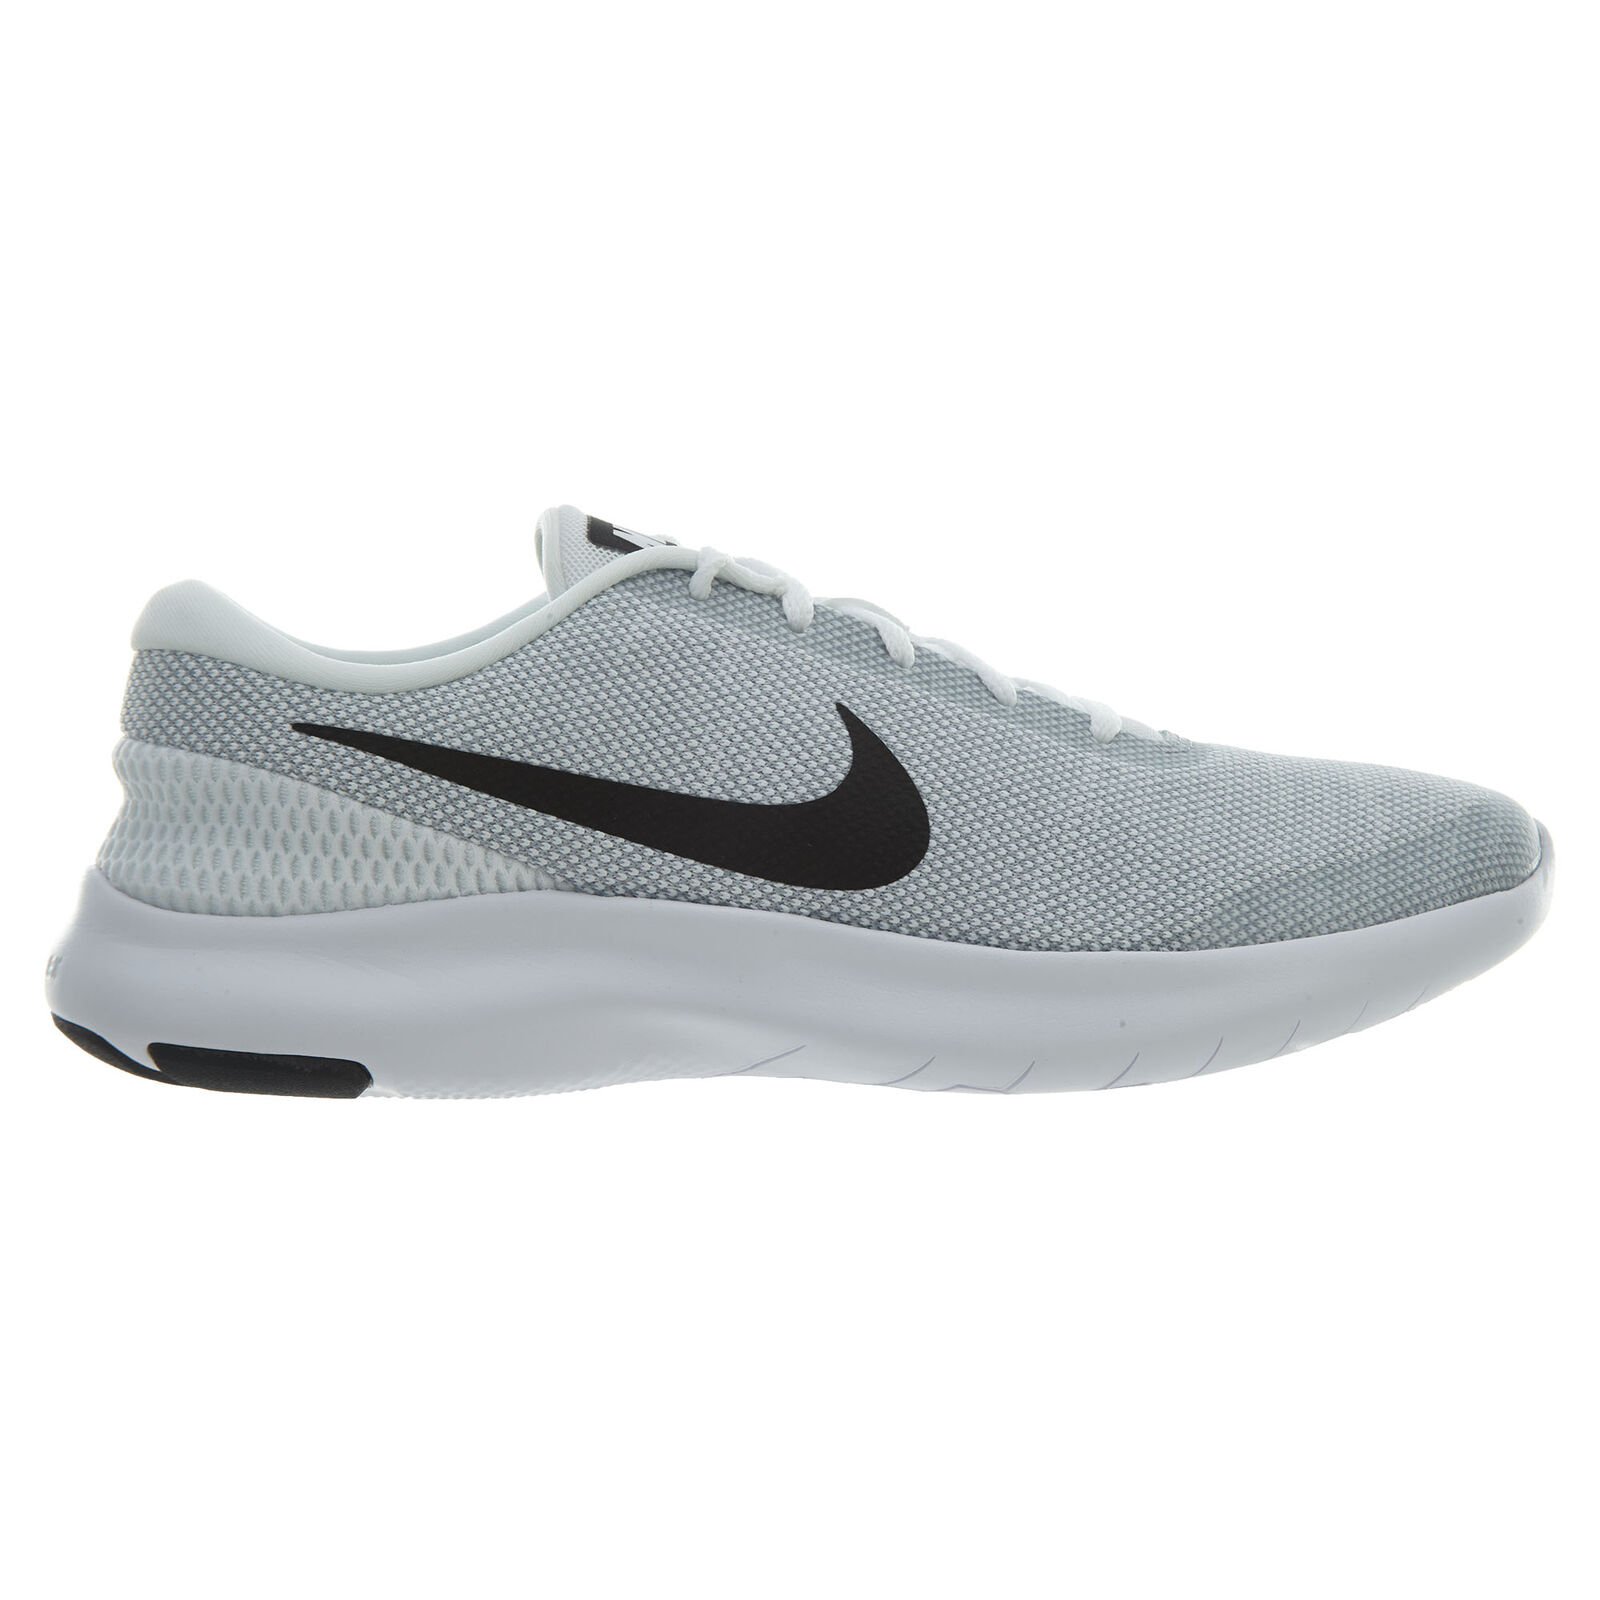 superior quality 7c5c5 48efd ... netherlands nike flex running experience rn 7 hombre gris blanco  running flex zapatos tamaño 105 8604b4 ...